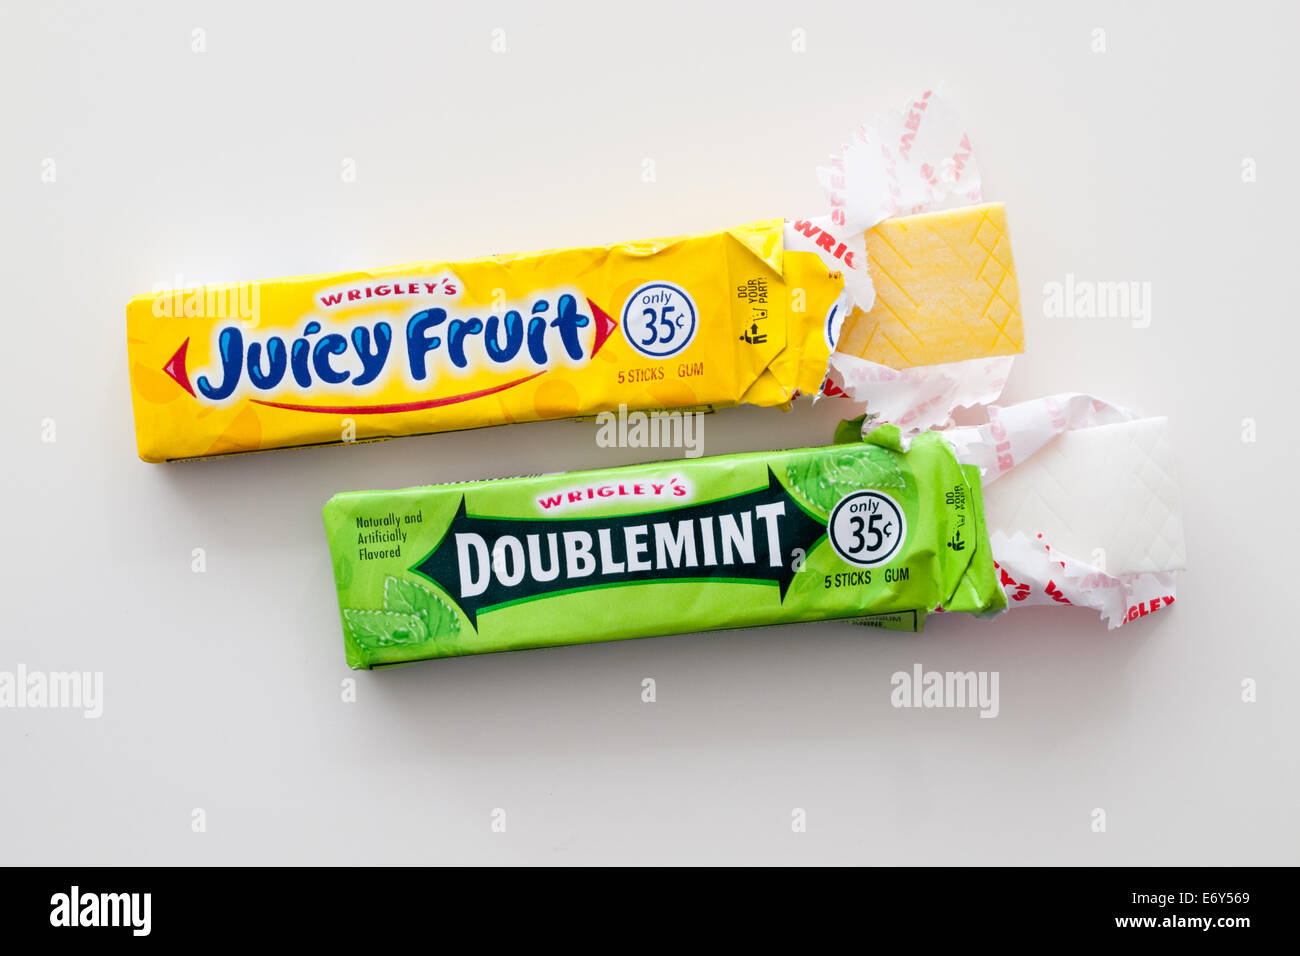 Juicy Fruit and Doublemint chewing gum, manufactured by the Wrigley Company, a division of Mars Inc. - Stock Image